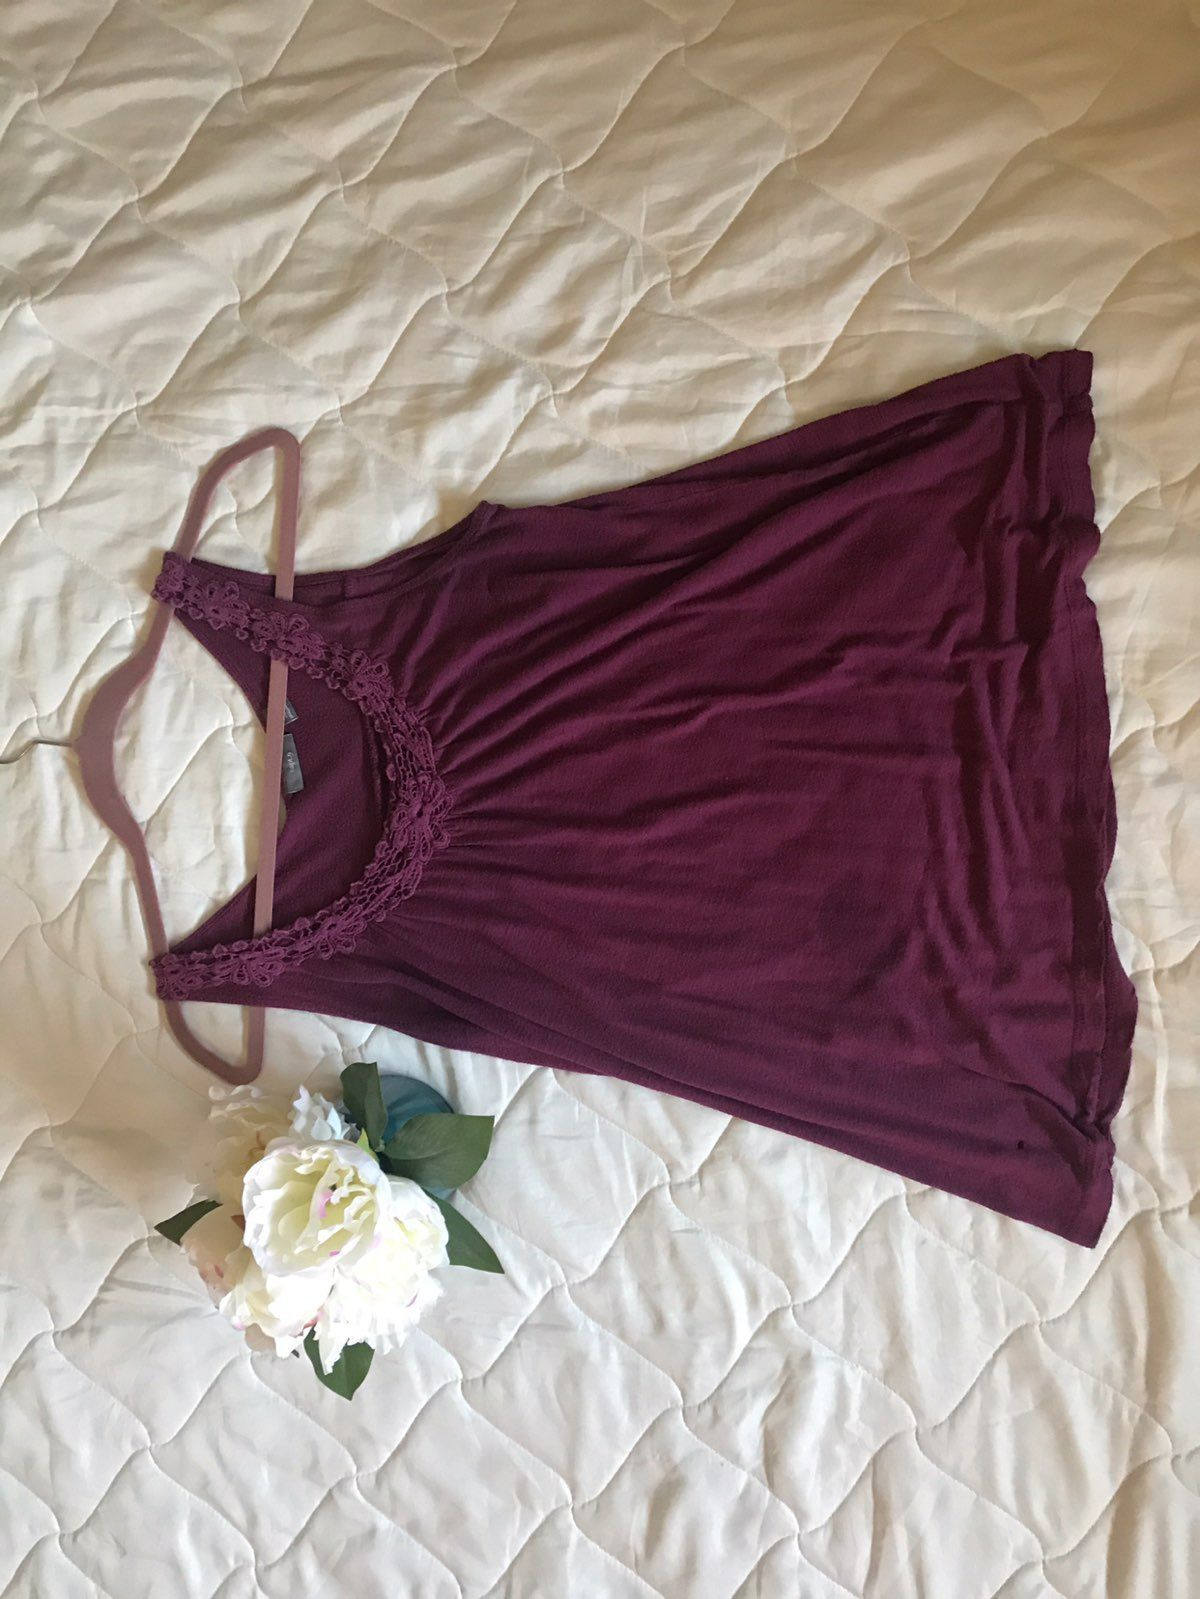 Apt. 9 Crotchet Neck Tank Mercari Rose clothing